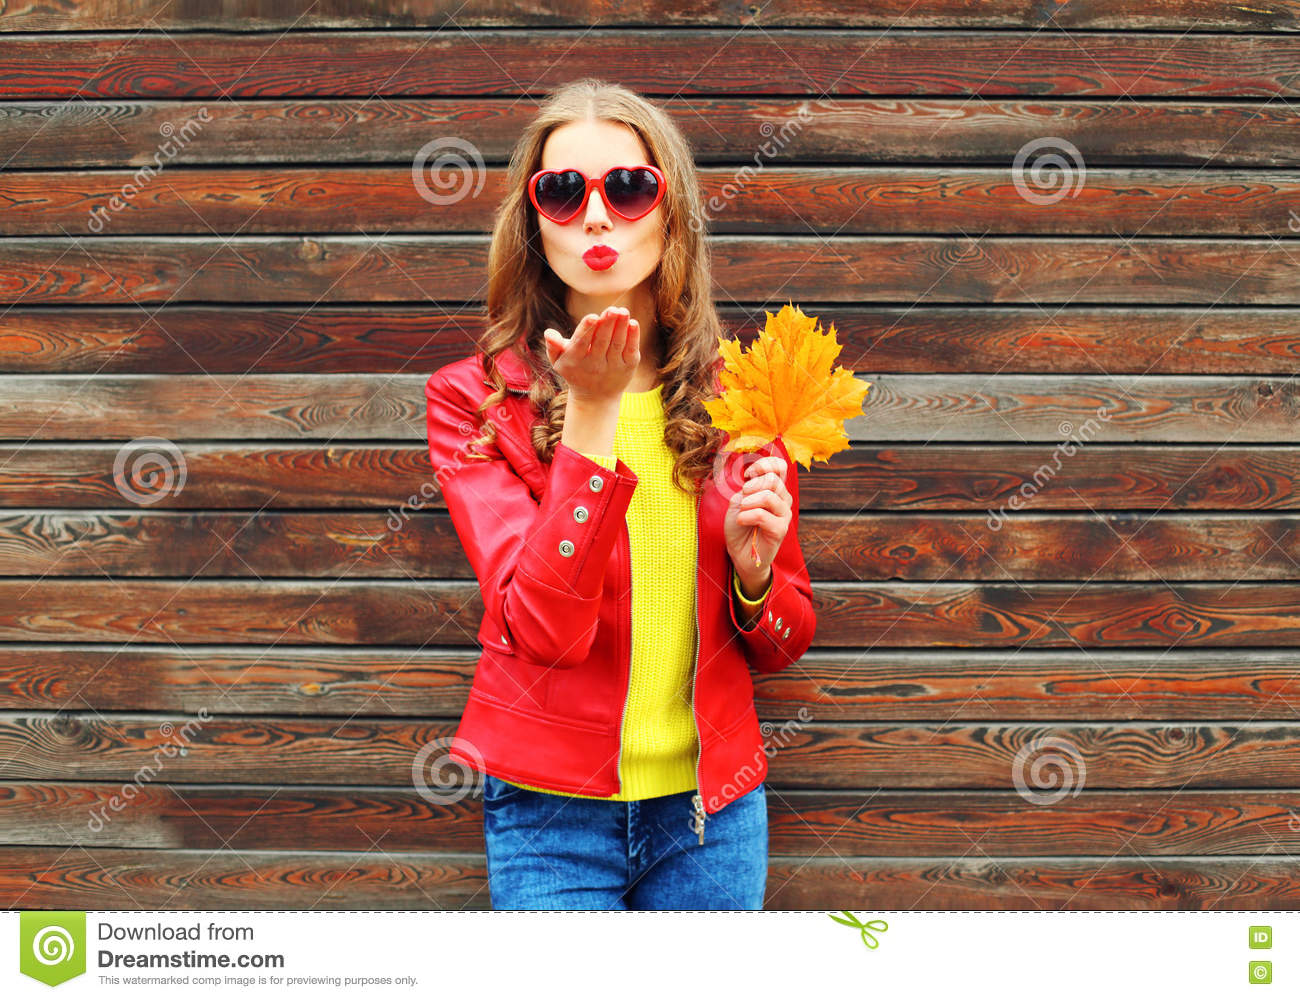 Fashion Pretty Young Woman Sends Air Sweet Kiss With Yellow Maple Leafs In Autumn Day Over Wooden Background Wearing Red Leather Stock Photo Image Of Clothes Lady 78645456